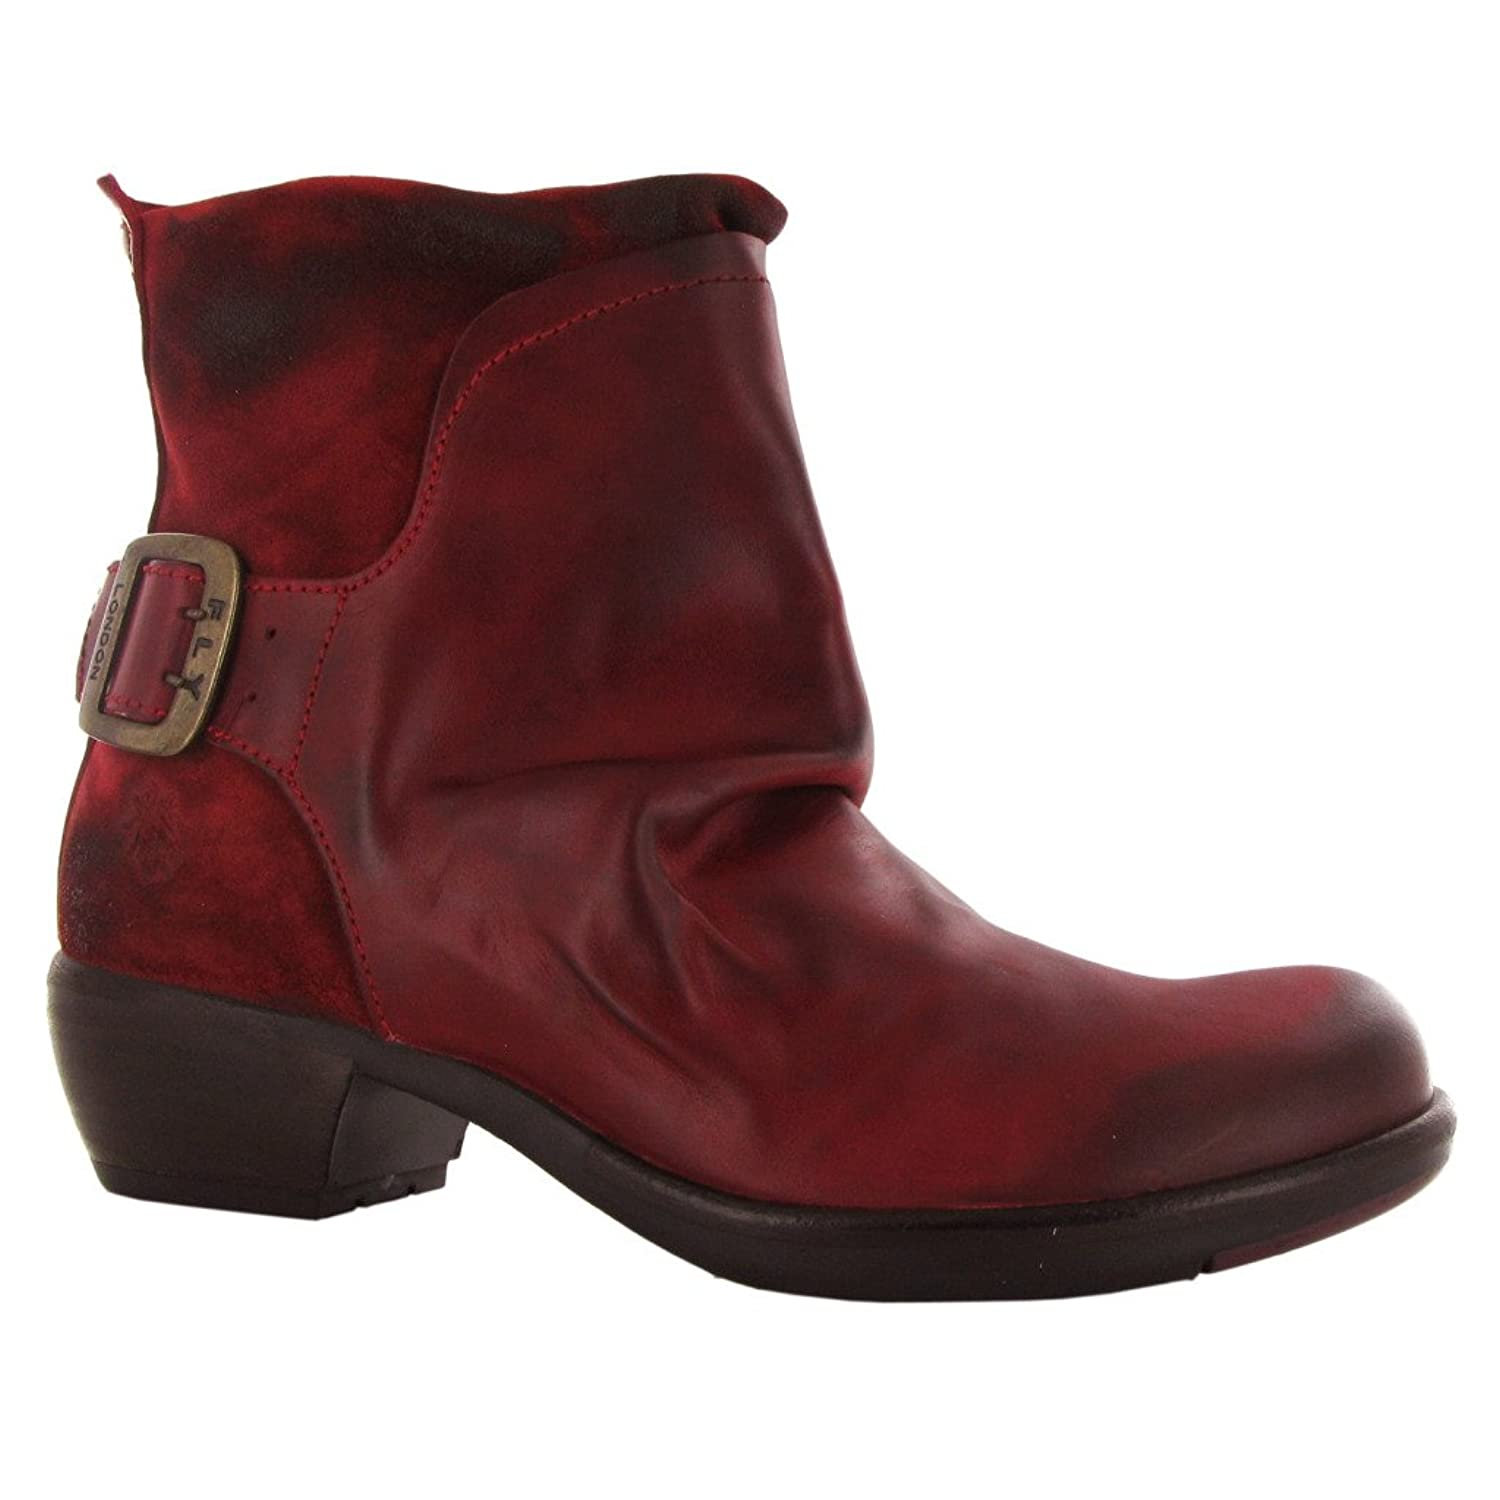 Fly London Mel Red Leather Womens Boots Size 38 EU: Amazon